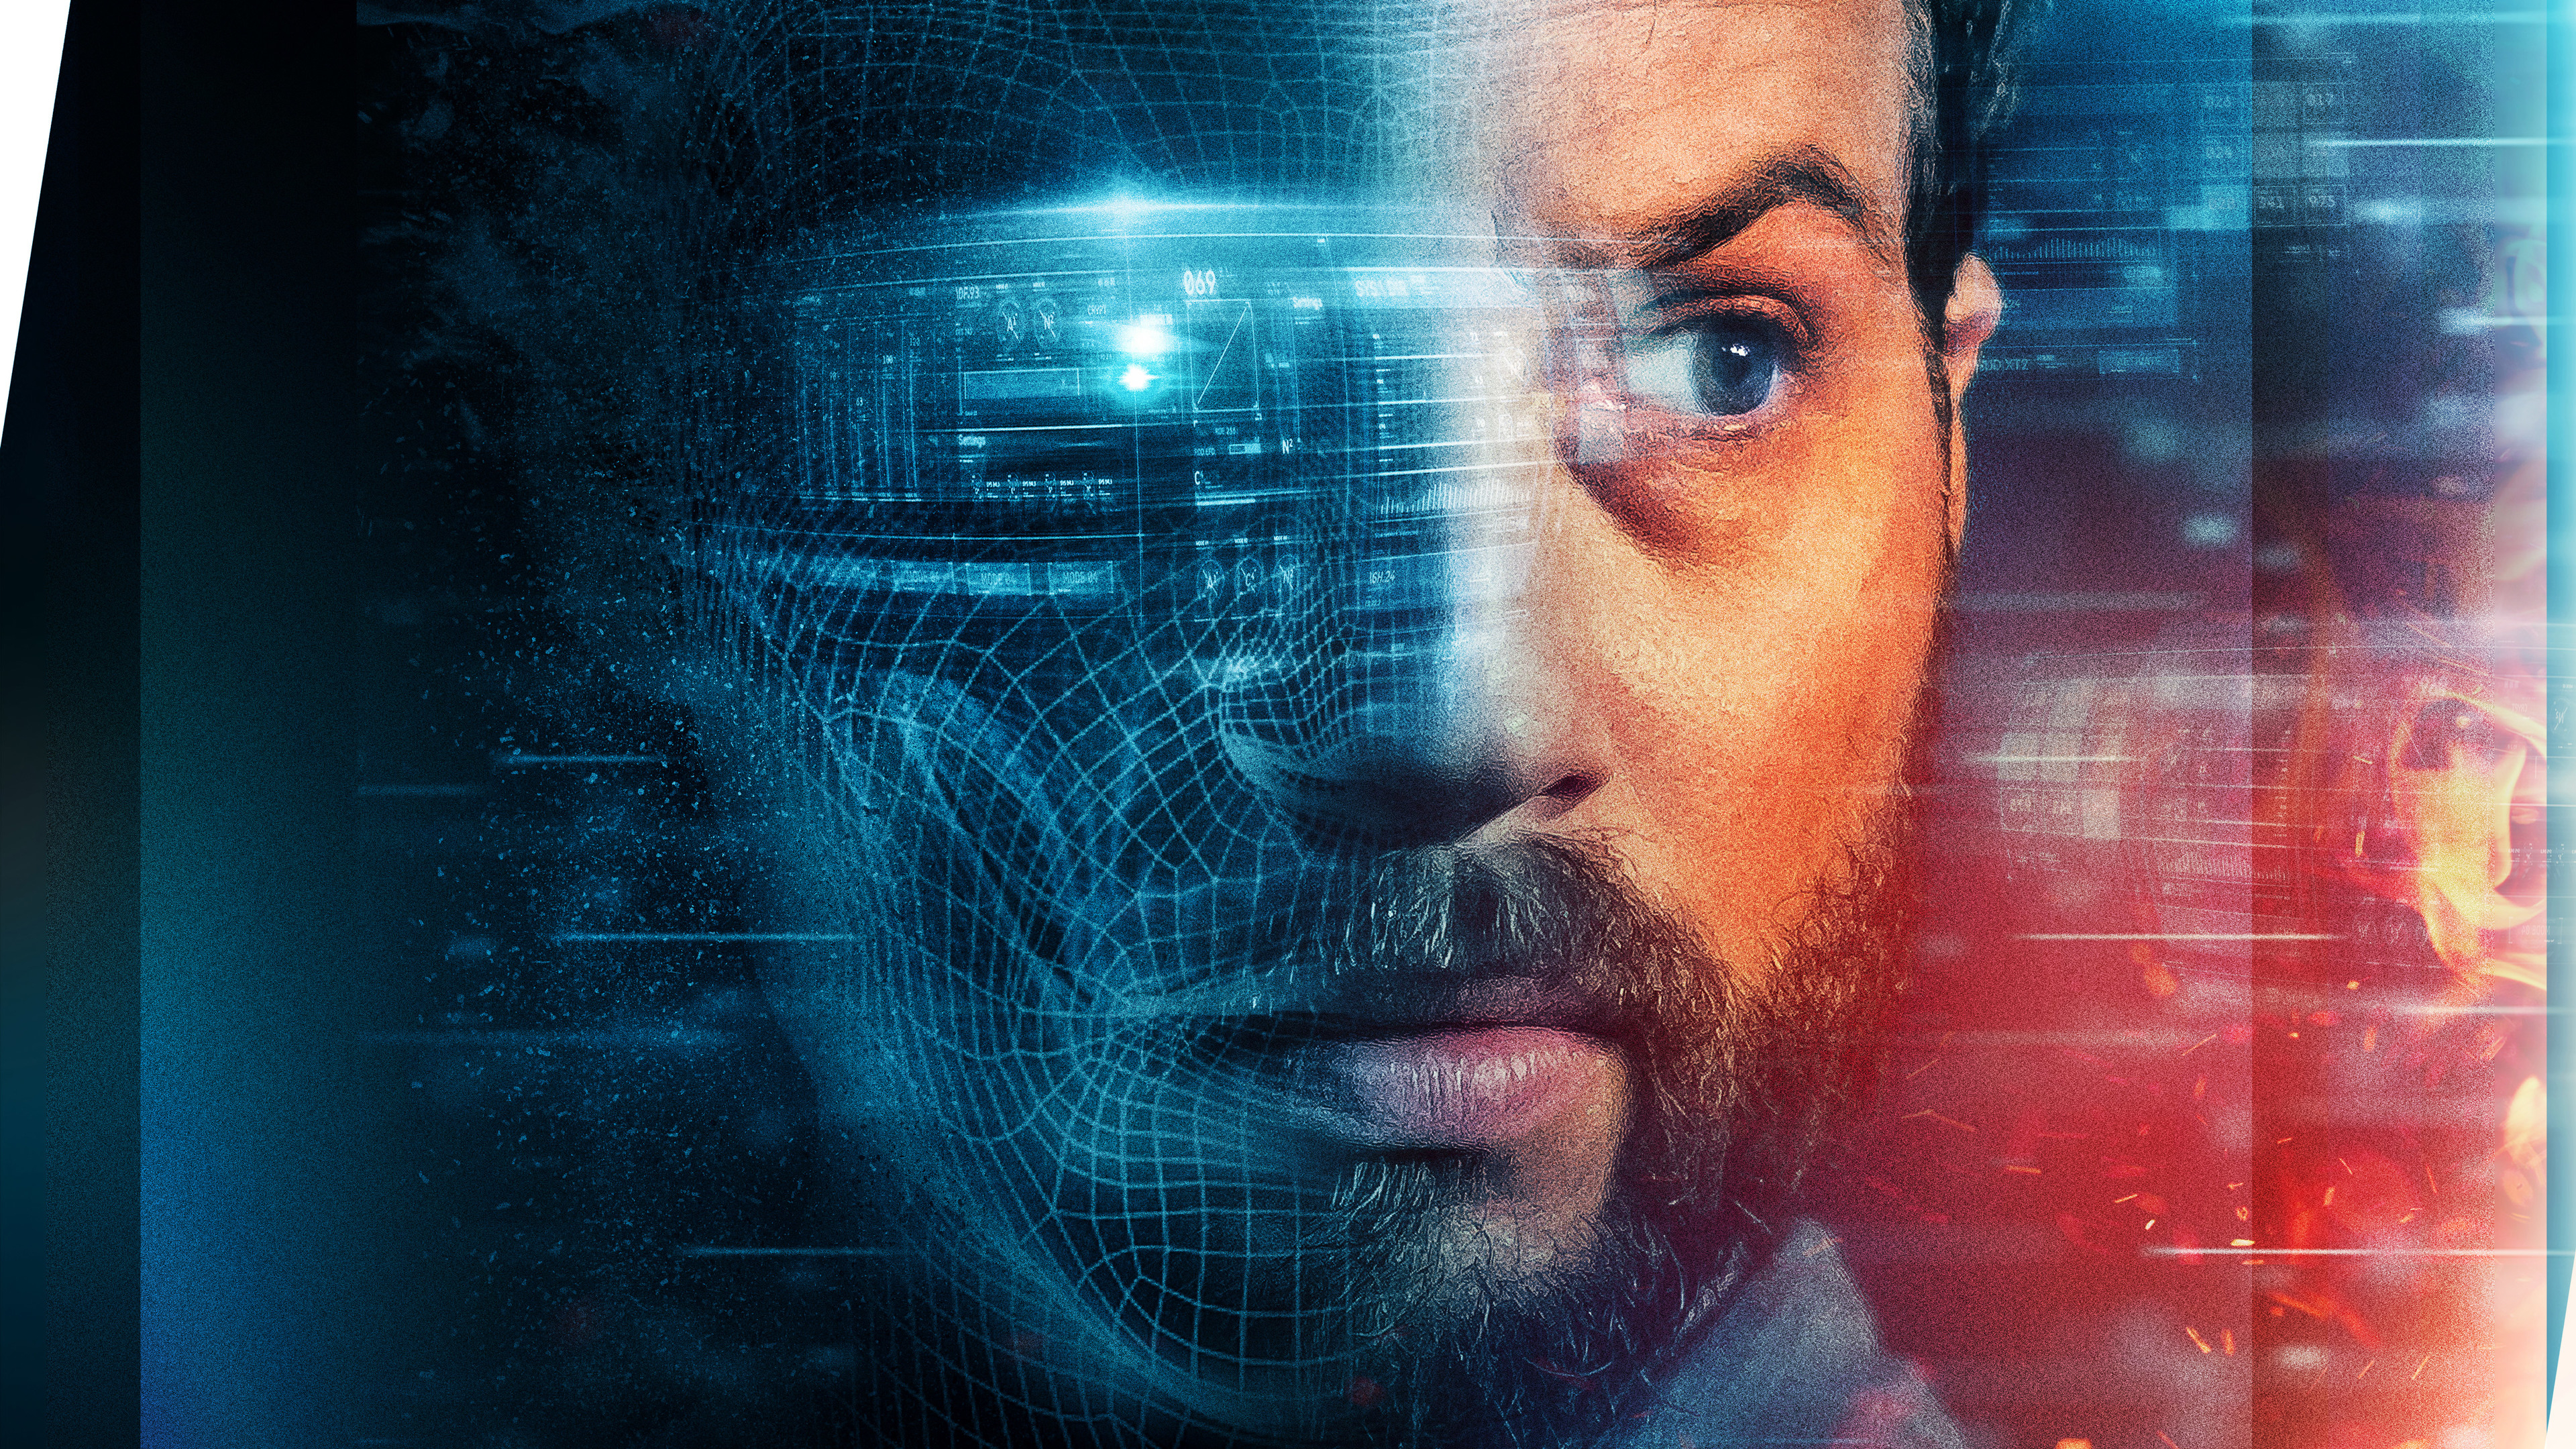 upgrade movie 4k 1545589850 - Upgrade Movie 4k - upgrade wallpapers, movies wallpapers, hd-wallpapers, 4k-wallpapers, 2018-movies-wallpapers